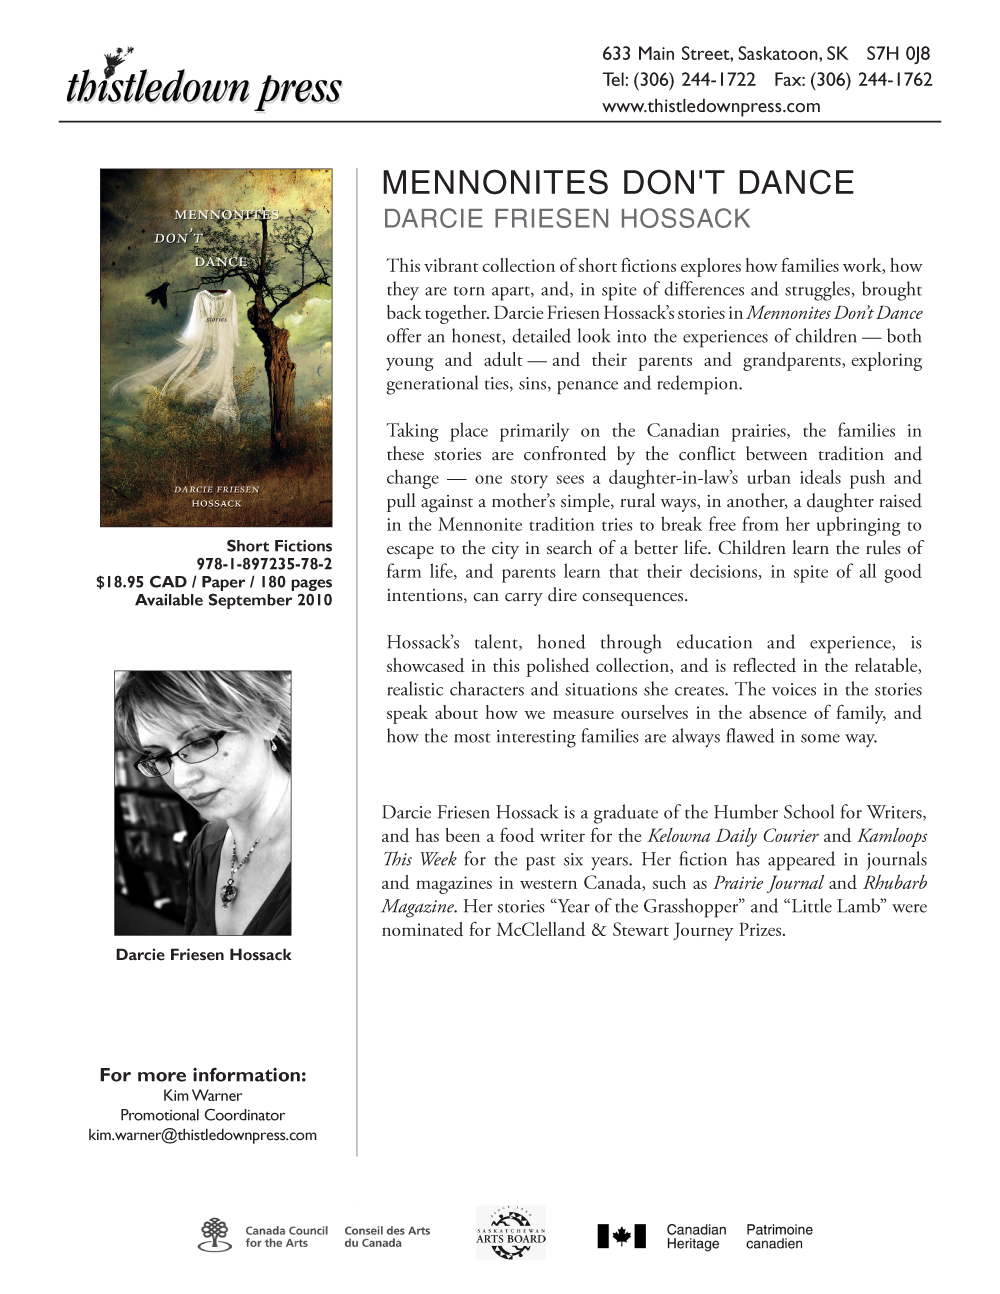 Darcie-Friesen-Hossack---Mennonites-Don't-Dance